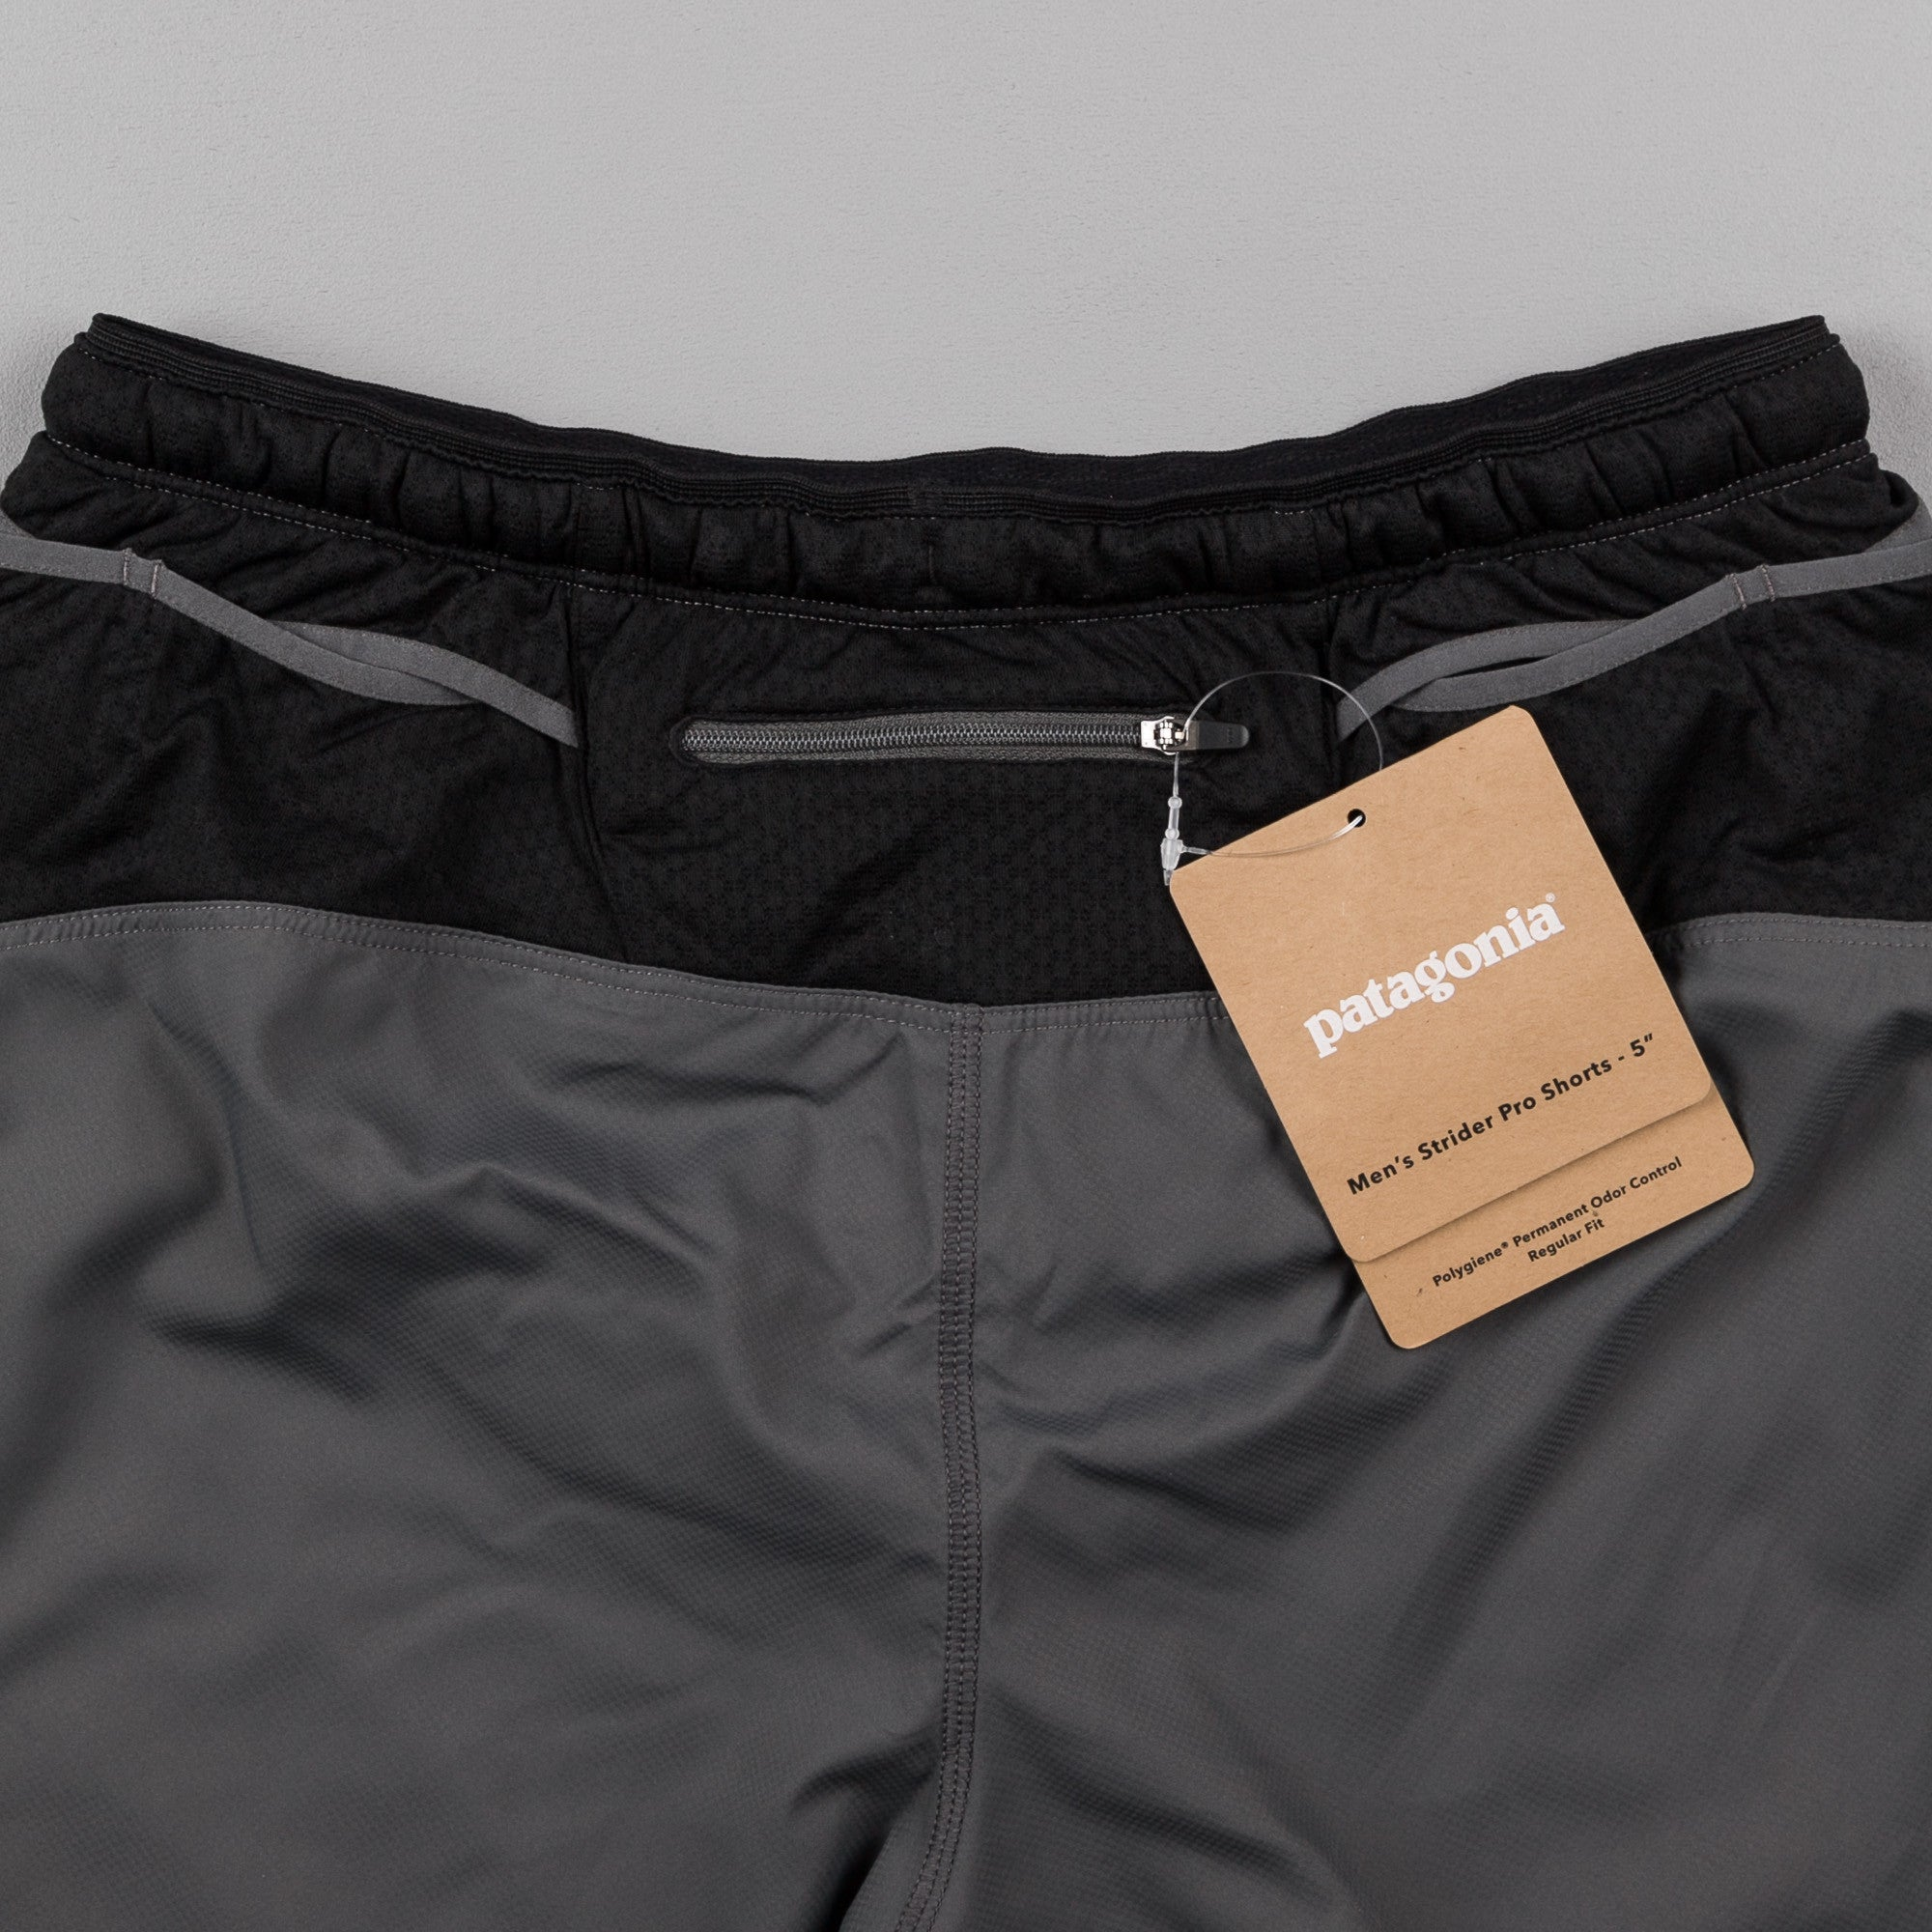 "Patagonia Strider Pro Shorts - 5"" Forge Grey"